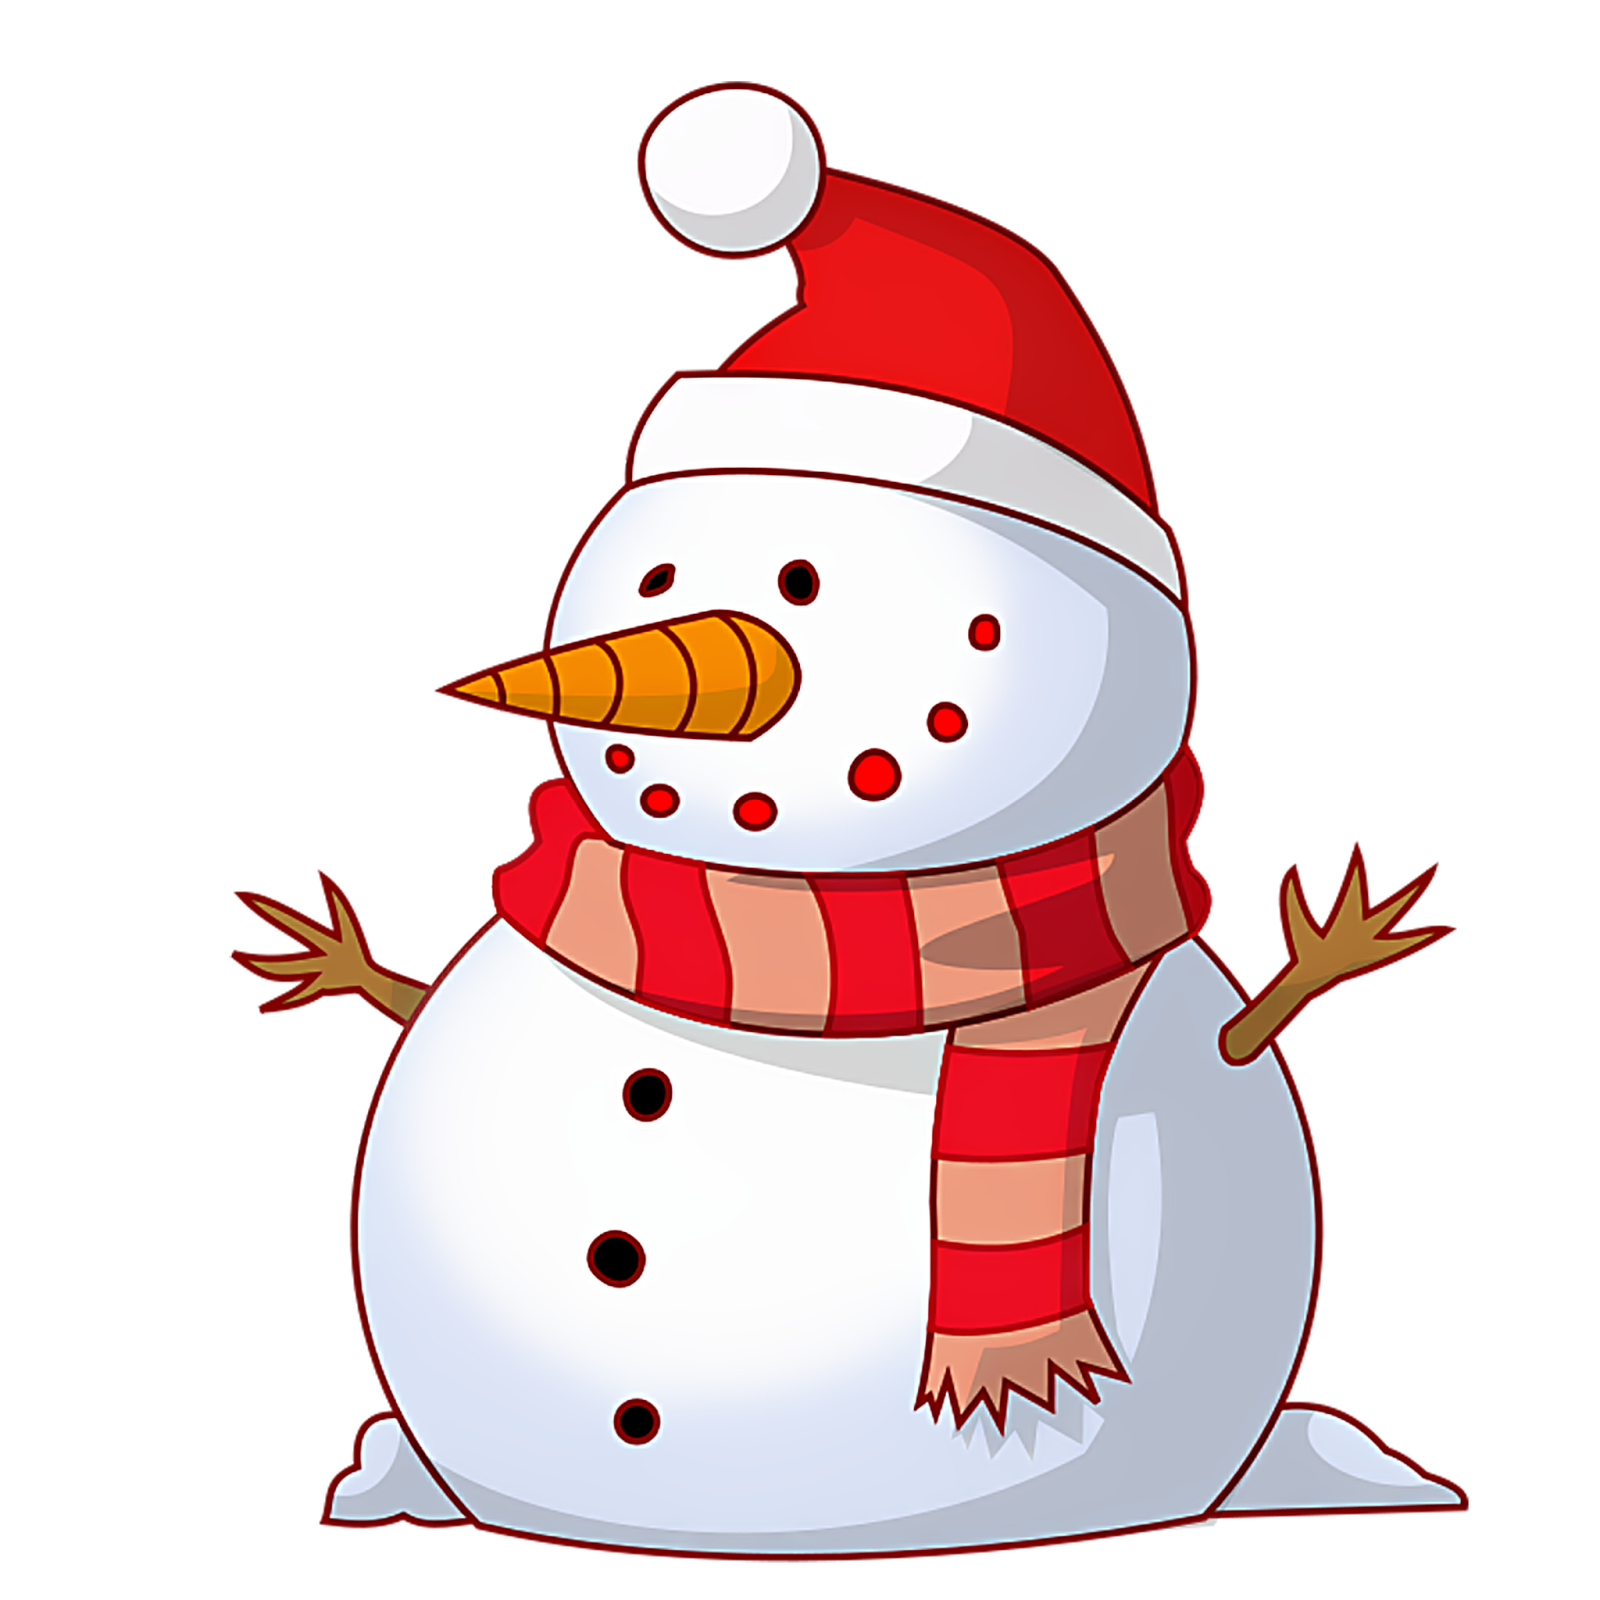 Clip Arts Related To : Santa Claus HD Clipart and Pictures for Christmas  Festival - Santa HD PNG